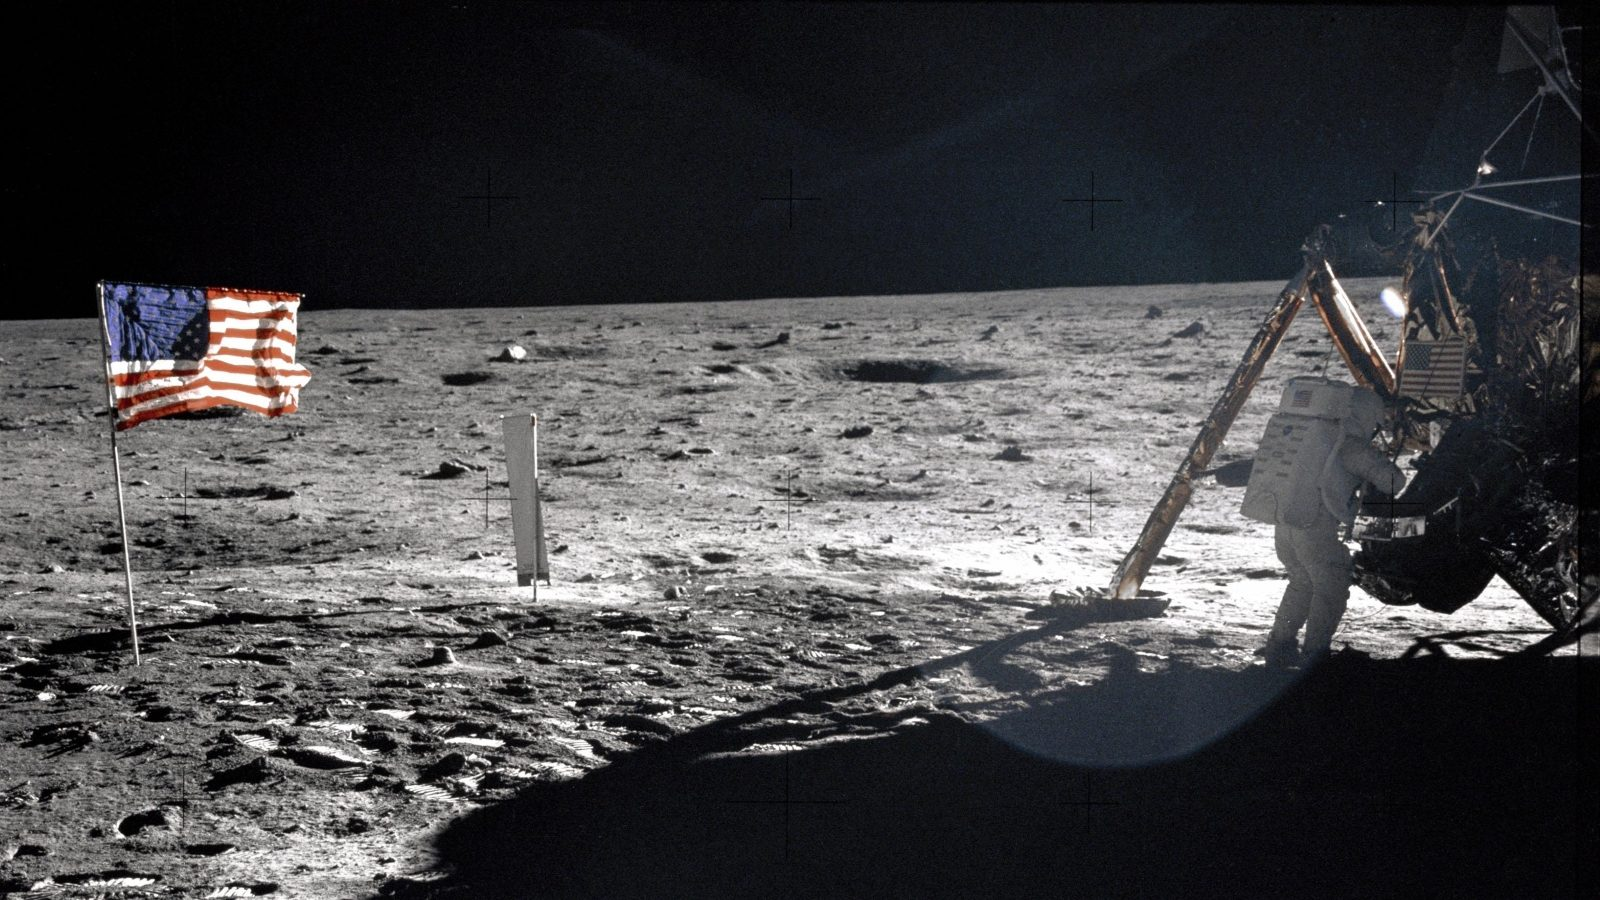 A photograph of Armstrong near the Apollo 11 LM